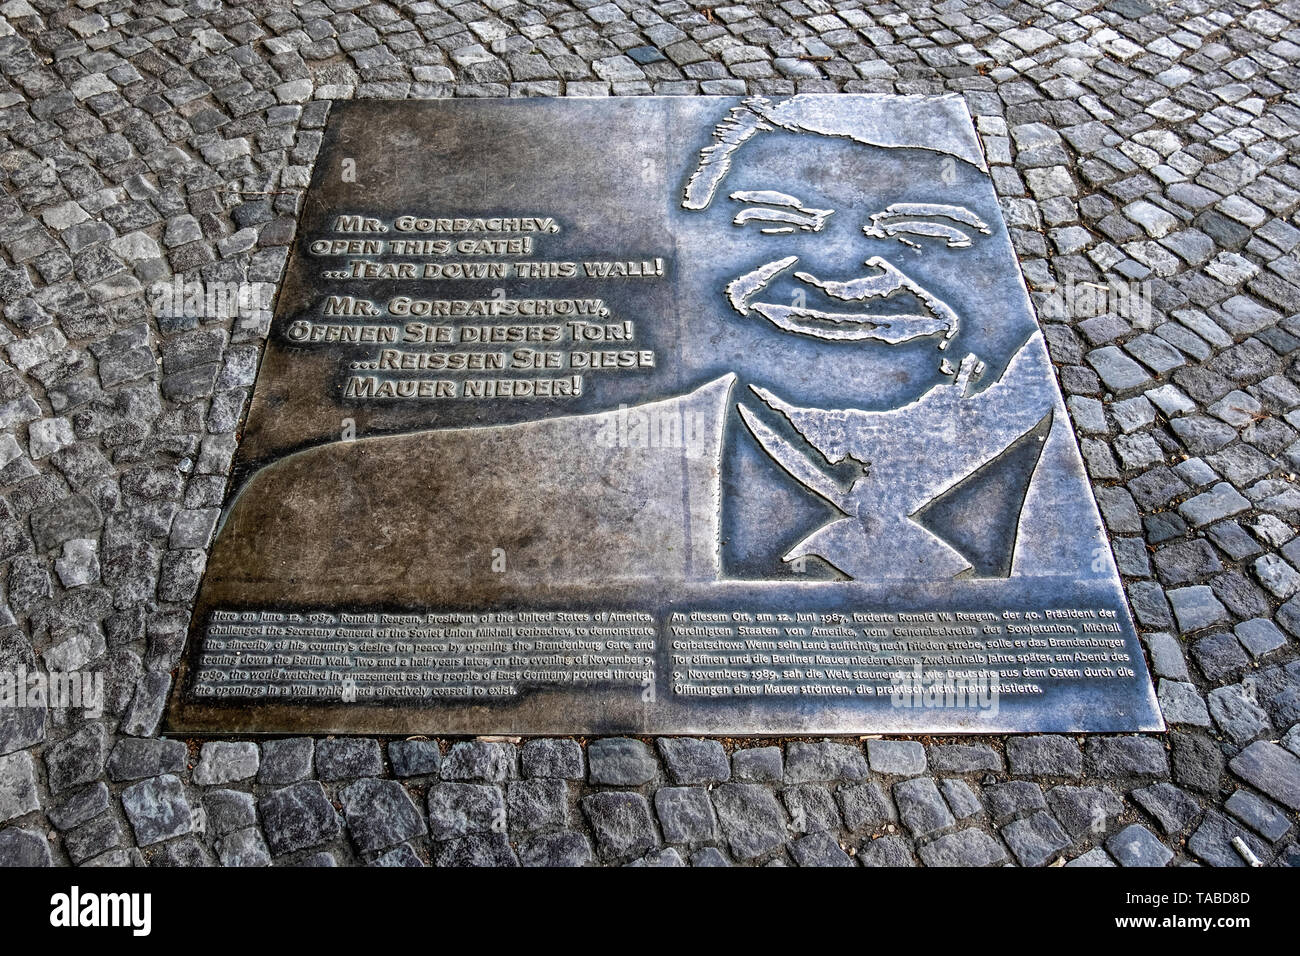 Plaque commemmorating 1987 Speech of President Ronald Reagan. The US leader called on Mr Gorbachov to tear down the wall  in Berlin Stock Photo